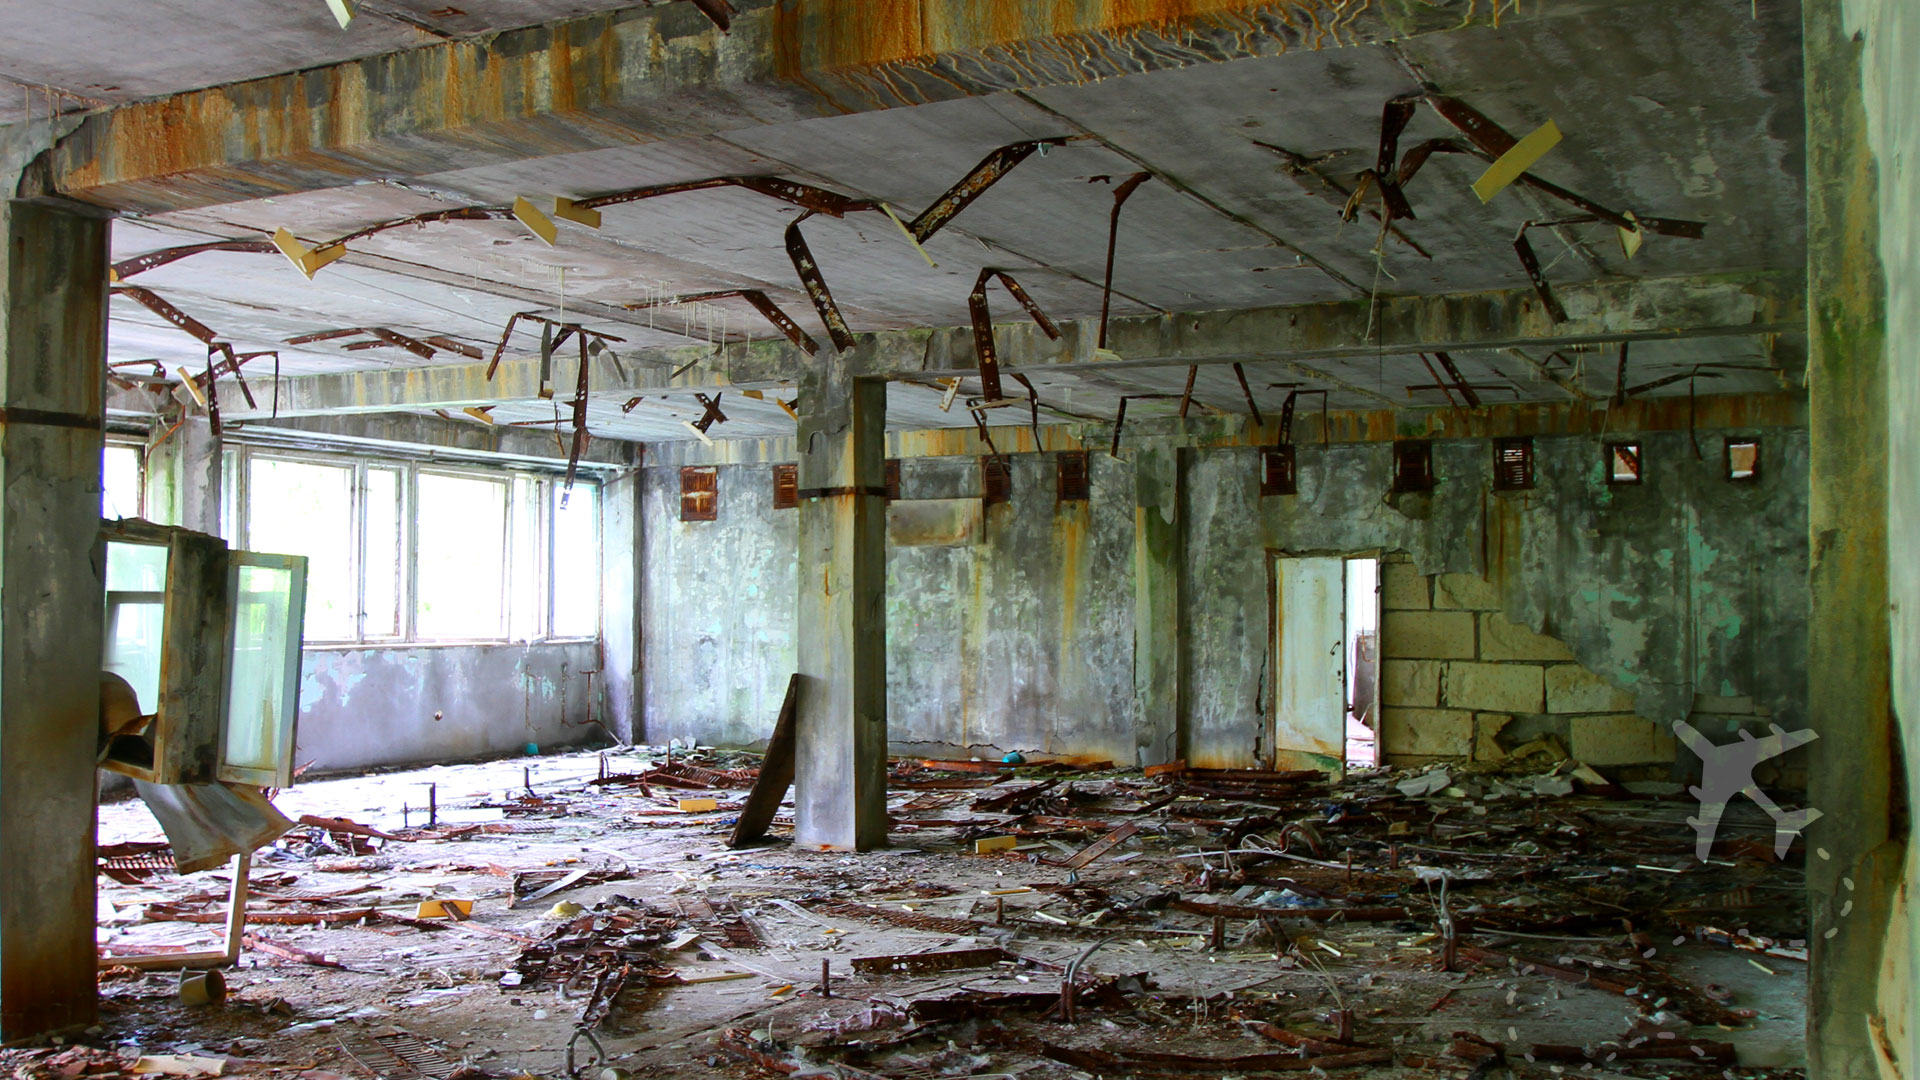 Inside an abandoned building in Pripyat - DESTINATIONS UNKNOWN